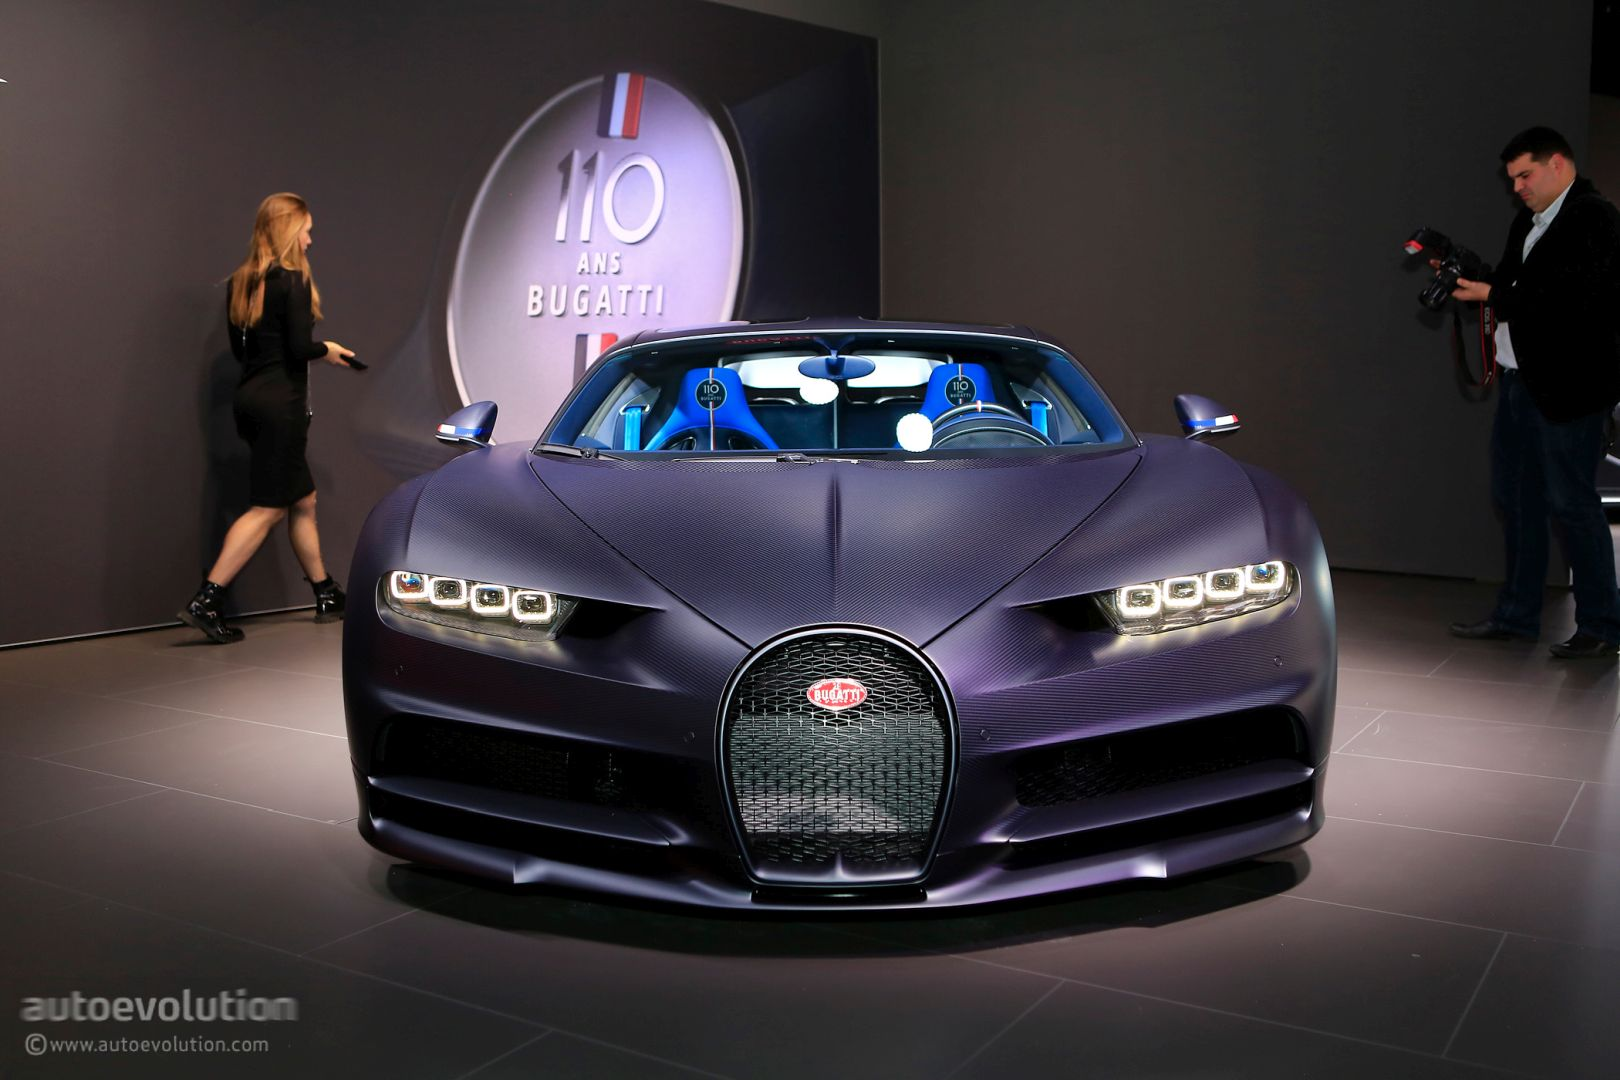 UPDATE: Why The Bugatti Chiron Sport 110 Ans Is an